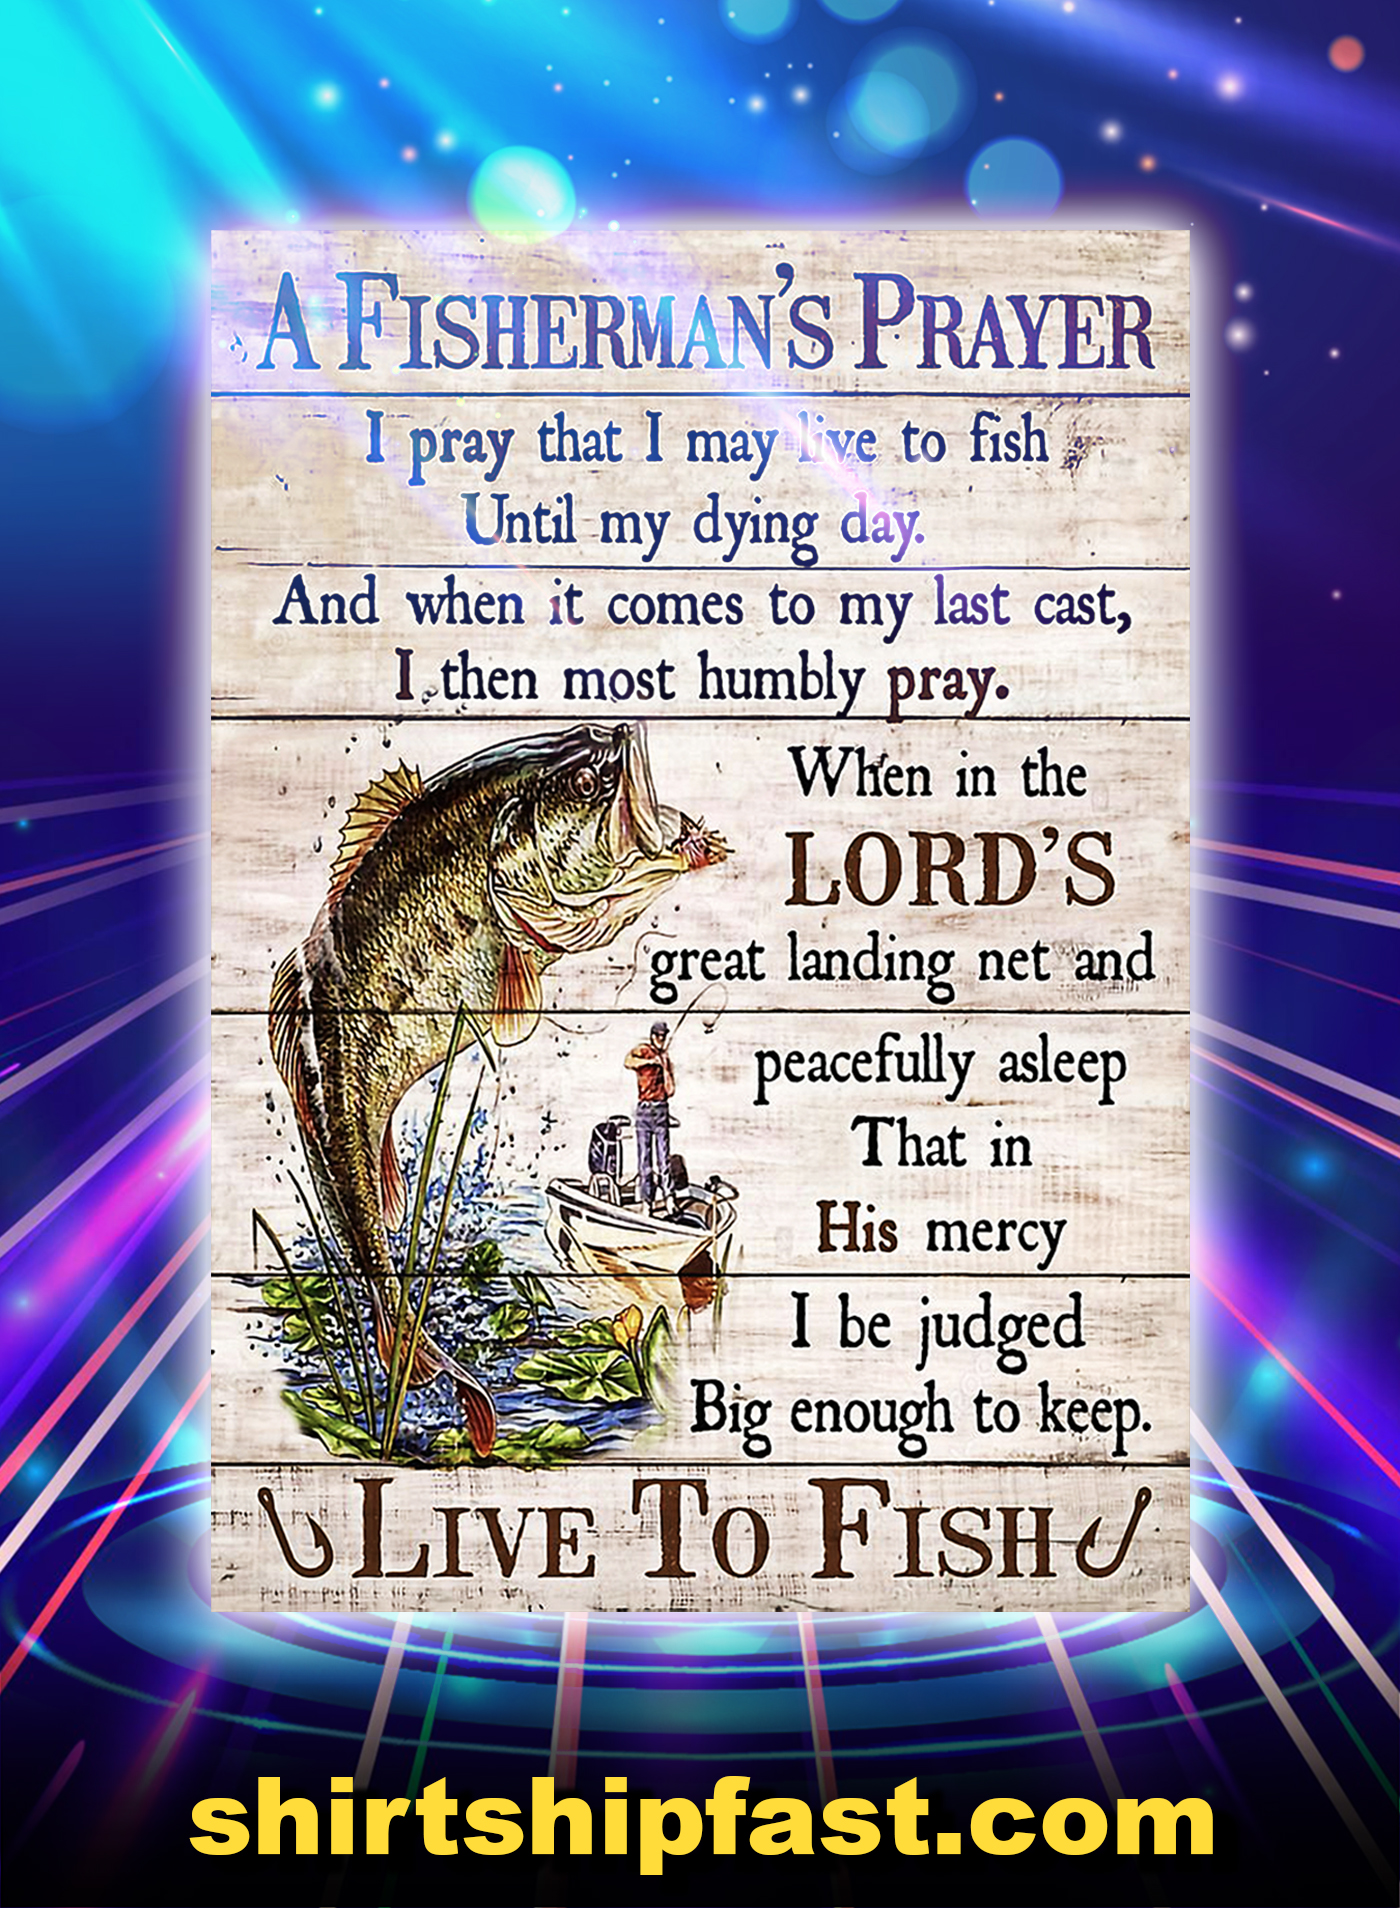 Fishing A Fisherman's Prayer Live To Fish Poster - A1